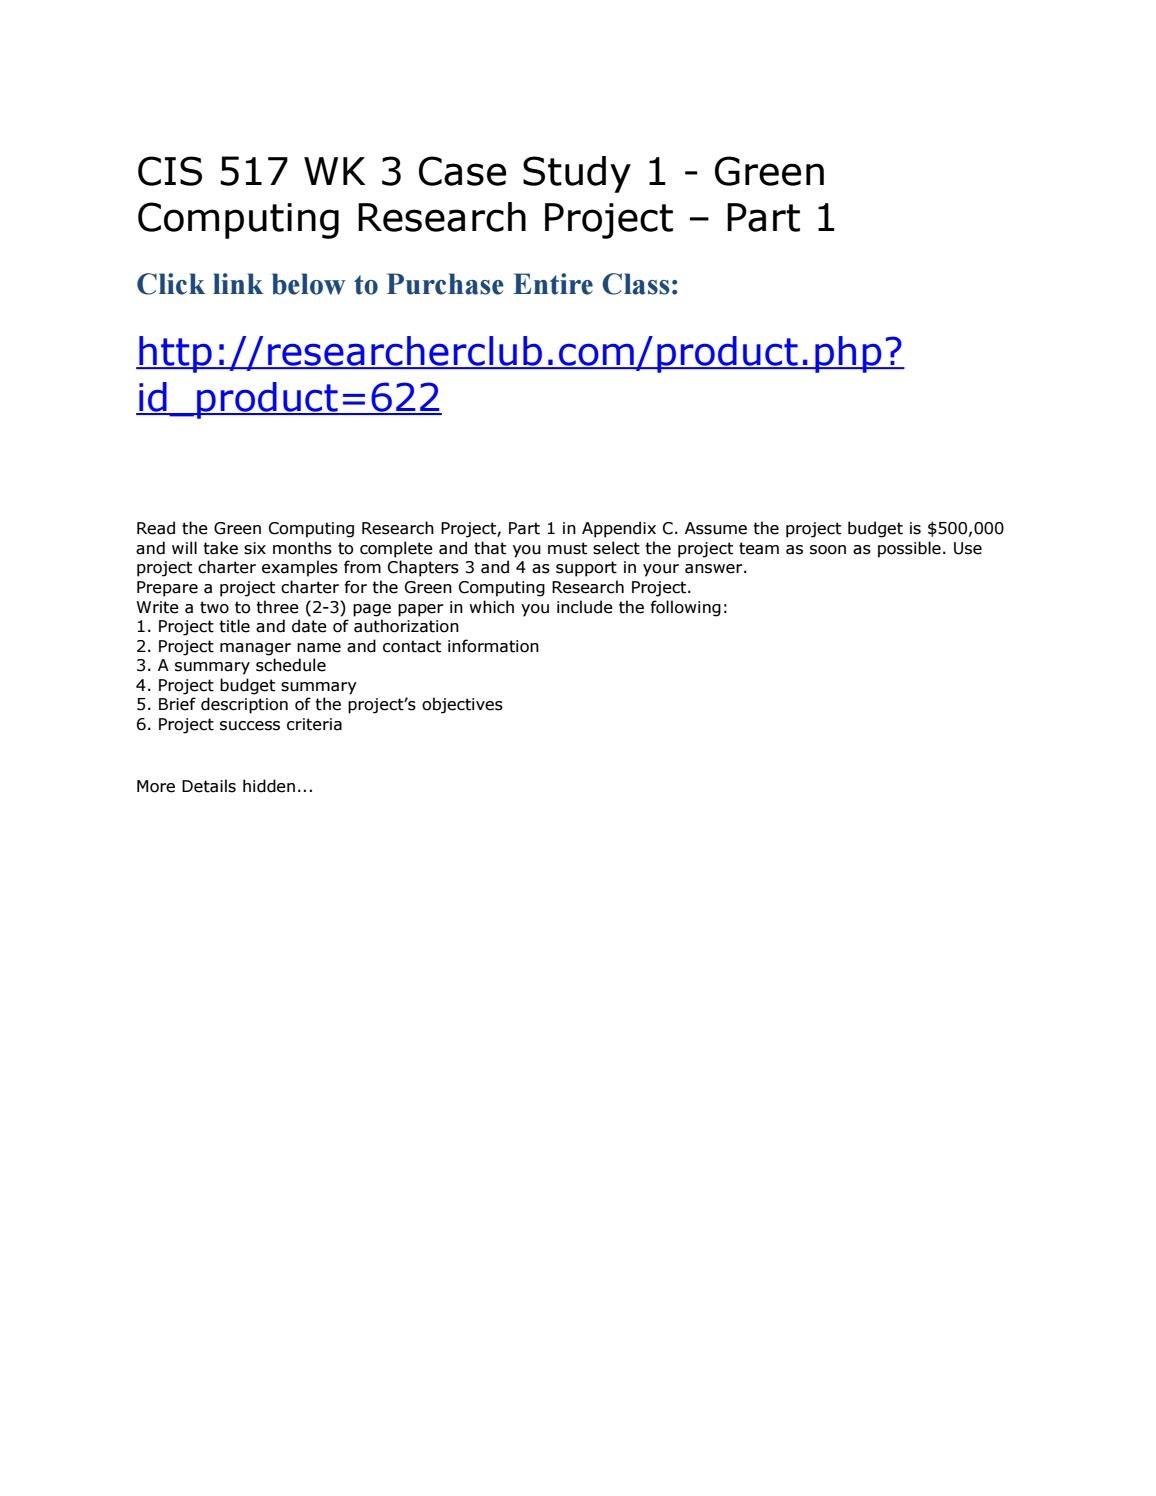 we are big inc essay green computing research project Additional case 1: green computing research project intro: you are working for we are big, inc, an international firm with over 100,000 employees located in several different countries a strategic goal is to help improve the environment while increasing revenues and reducing costs.